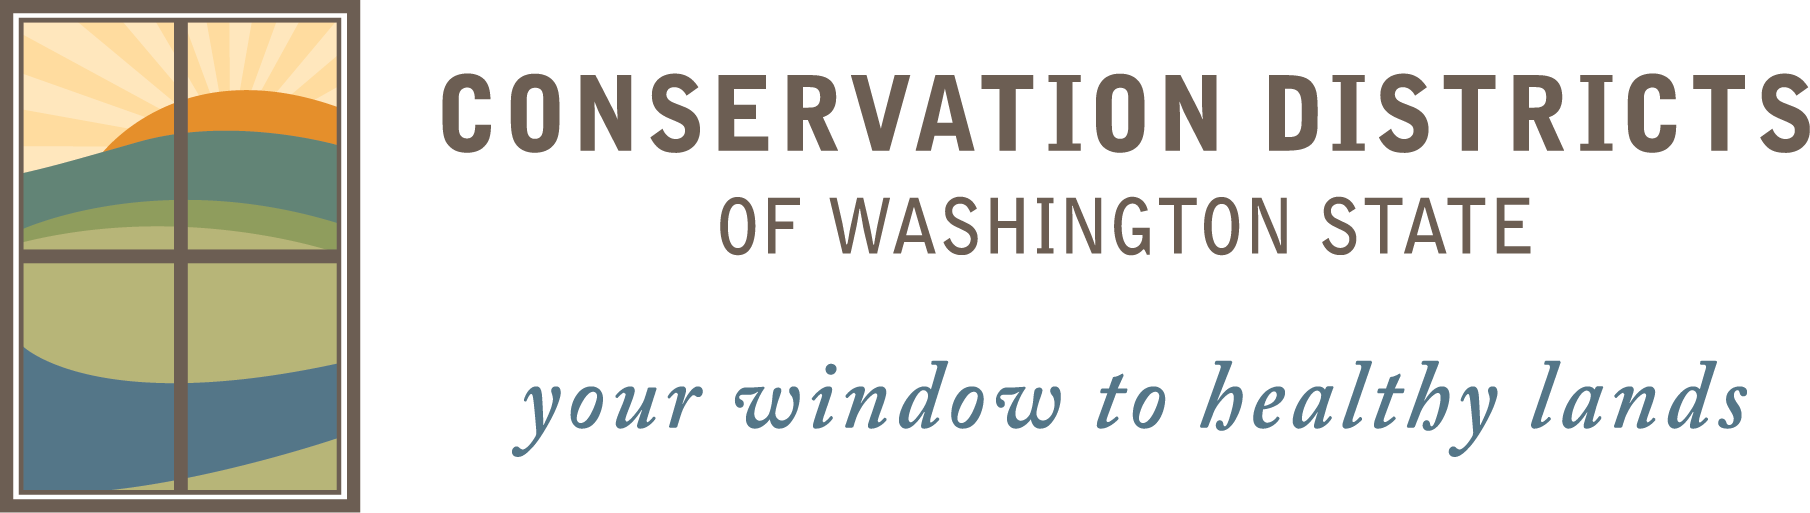 Conservation districts of Washington State: Your window to healthy lands